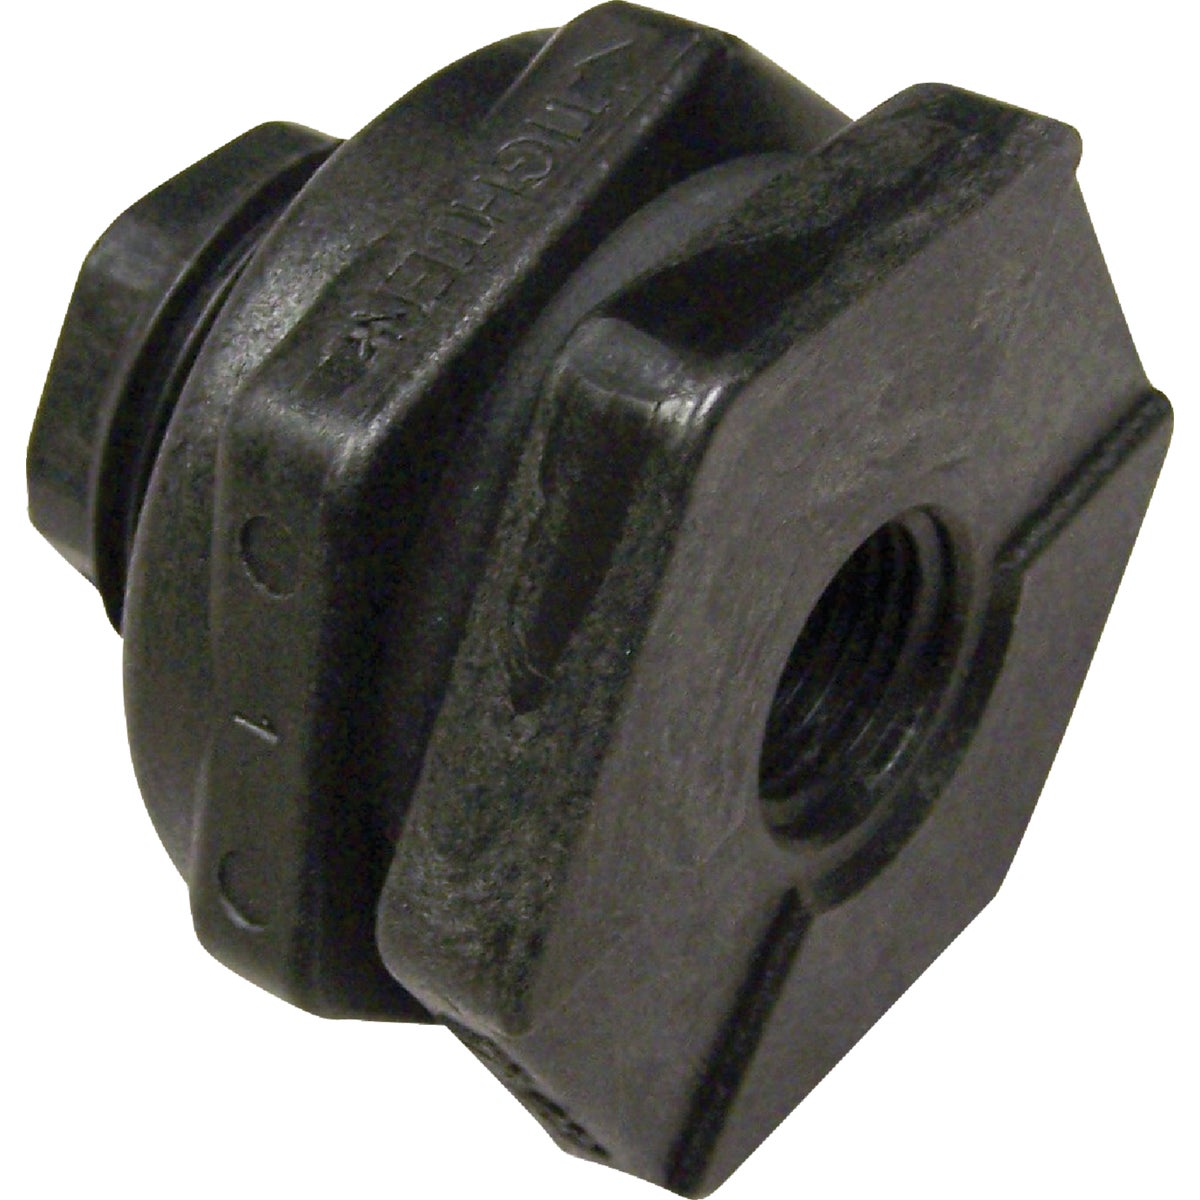 1/2 BULKHEAD ADAPTER - 38905 by Genova Inc